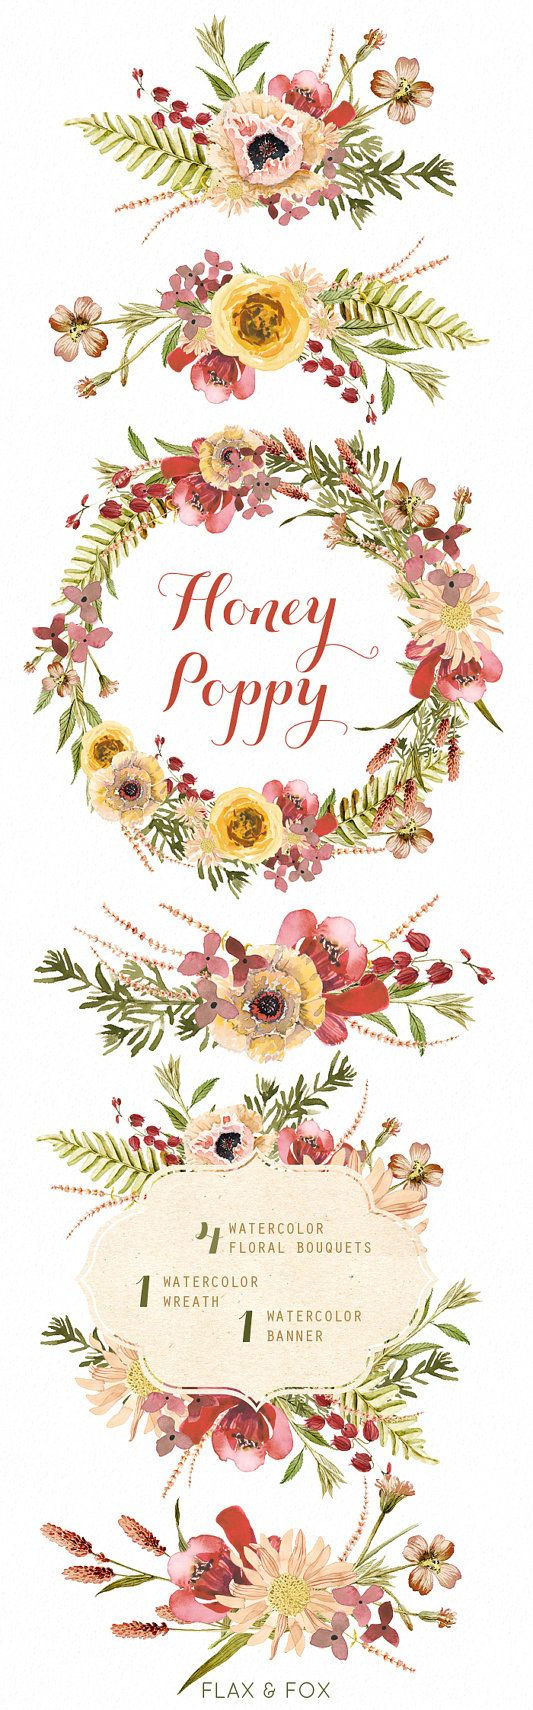 Honey Poppy Watercolor Bouquets Wreath hand painted clipart